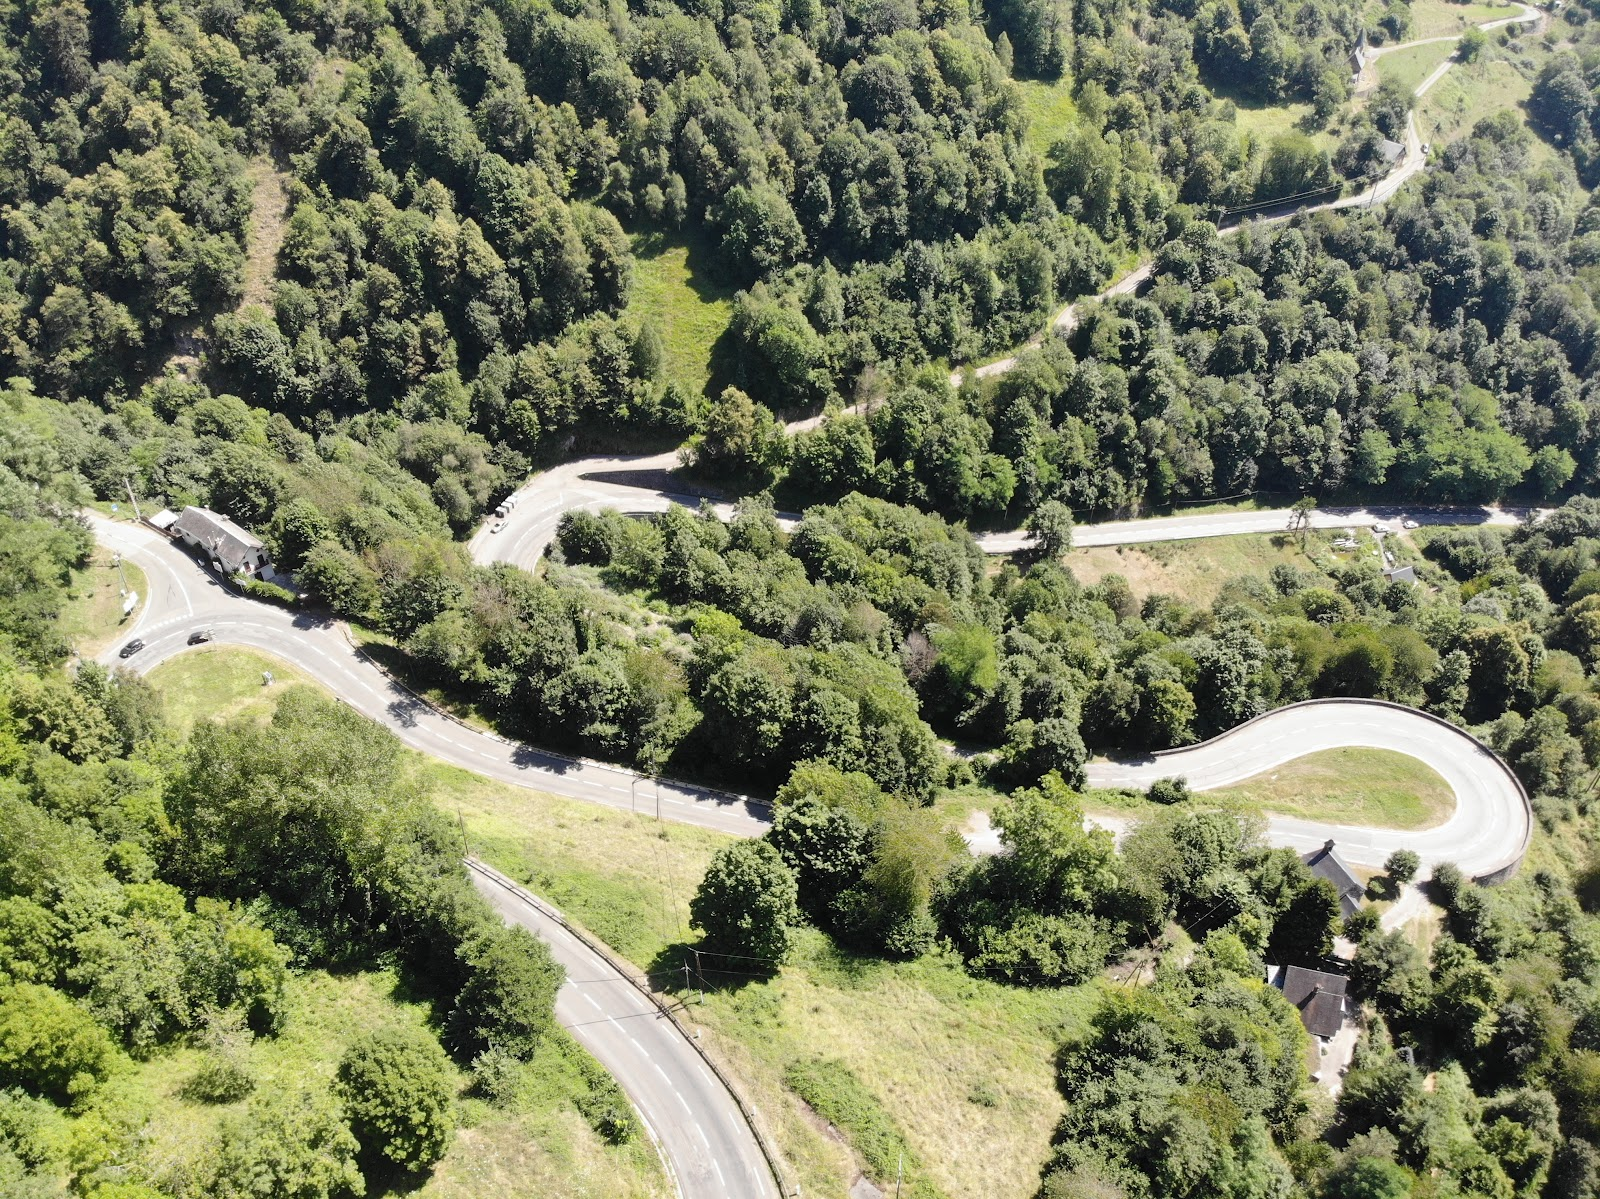 Climbing Col de Peyresourde from Bagneres-de-Luchon by bike - aerial drone photo of hairpin and switchbacks